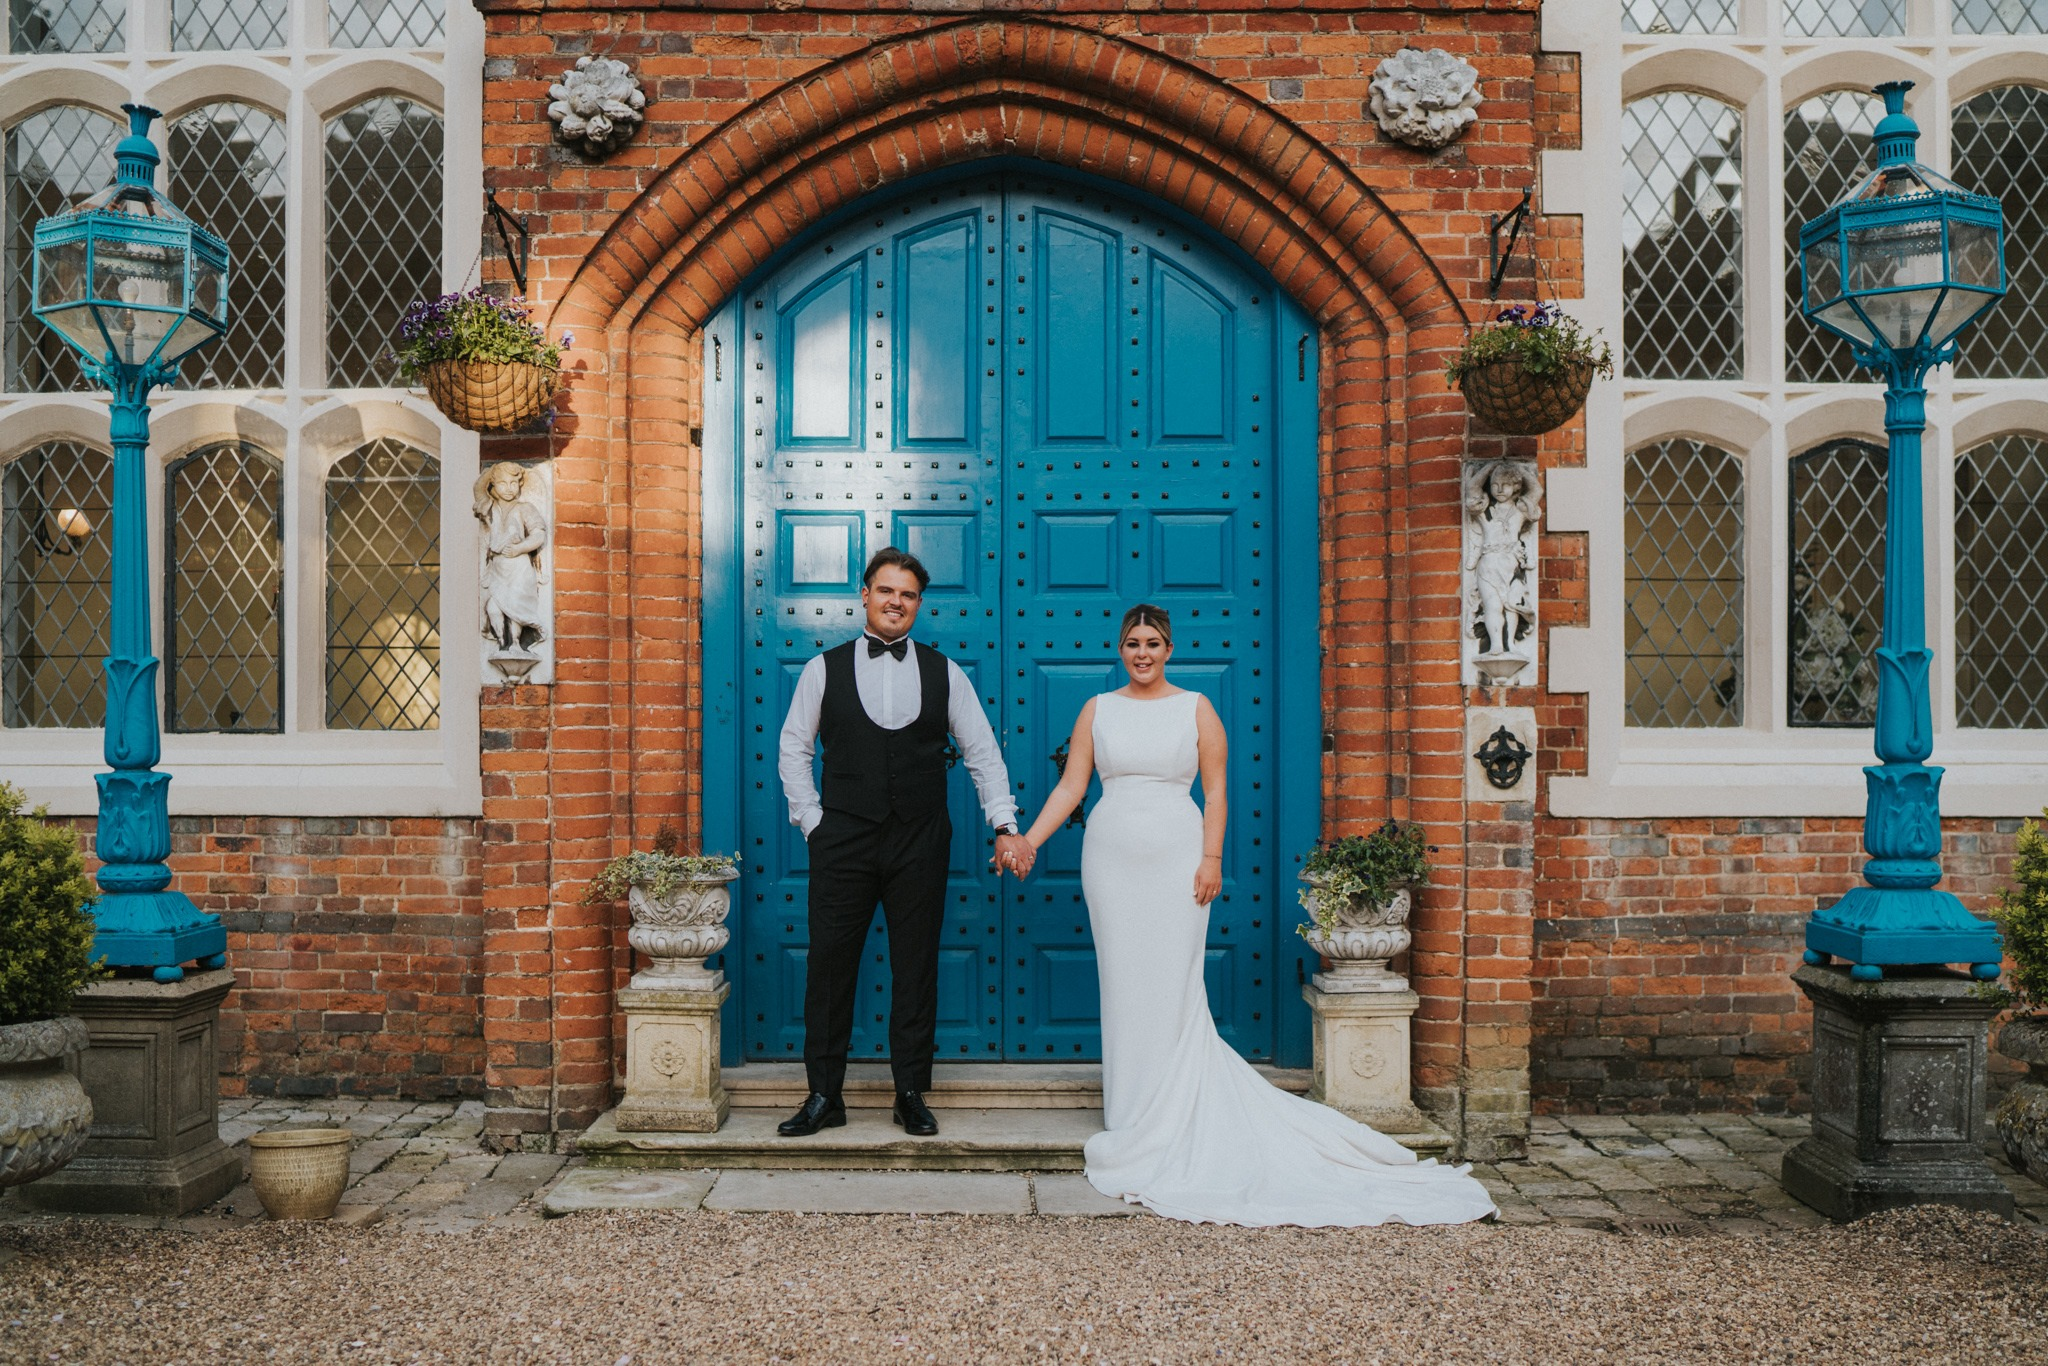 chloe + dan - After what seemed like an eternity, searching through over to 100 photographer's websites, I came across Grace. Right from the outset Grace captured my attention, not just from her amazing photos and natural talent but by her friendly and outgoing personality. Following my initial enquiry through Grace's website, rather than communicate through screen, she arranged a convenient time to give me a call and just have a chat. This was not a sales pitch! Grace simply got to know me and explained a little more about her and her work, and before I knew it, it felt like two old friends just having a catch up!Following this, after stalking Grace's work for some weeks, I knew I just had to have her! Grace was soo lovely and flexible and tailored a photography package to suit our needs and budget. We also decided to book pre-wedding shoot with Grace, which was one of the best things we've ever done. This gave us the opportunity to meet up with Grace in person, which definitely helped my fiancé as he was a bit camera shy to say the least. Grace even suggested that we bring our dog Nelly along, which we was absolutely delighted about! Within seconds of meeting Grace my partner and I felt instantly at ease, bouncing off her bubbly energy and kind nature, she made us feel so relaxed and turned what we thought might be an awkward photo shoot session in to a fantastically fun filled afternoon. The shoot felt so natural and Grace made us both feel so comfortable.As for our wedding day, where do I begin? As soon as Grace arrived she got stuck in, even going above and beyond her photographer duties and helping us move boxes, flowers and dresses to where they needed to be. Grace fitted in to the day just perfectly and felt more like an old friend and wedding guest rather than the photographer. Even in my minor times of brief panic on the day Grace was there with her comforting and bubbly personality to reassure me. Grace's planning and precision of the day was incredible, 